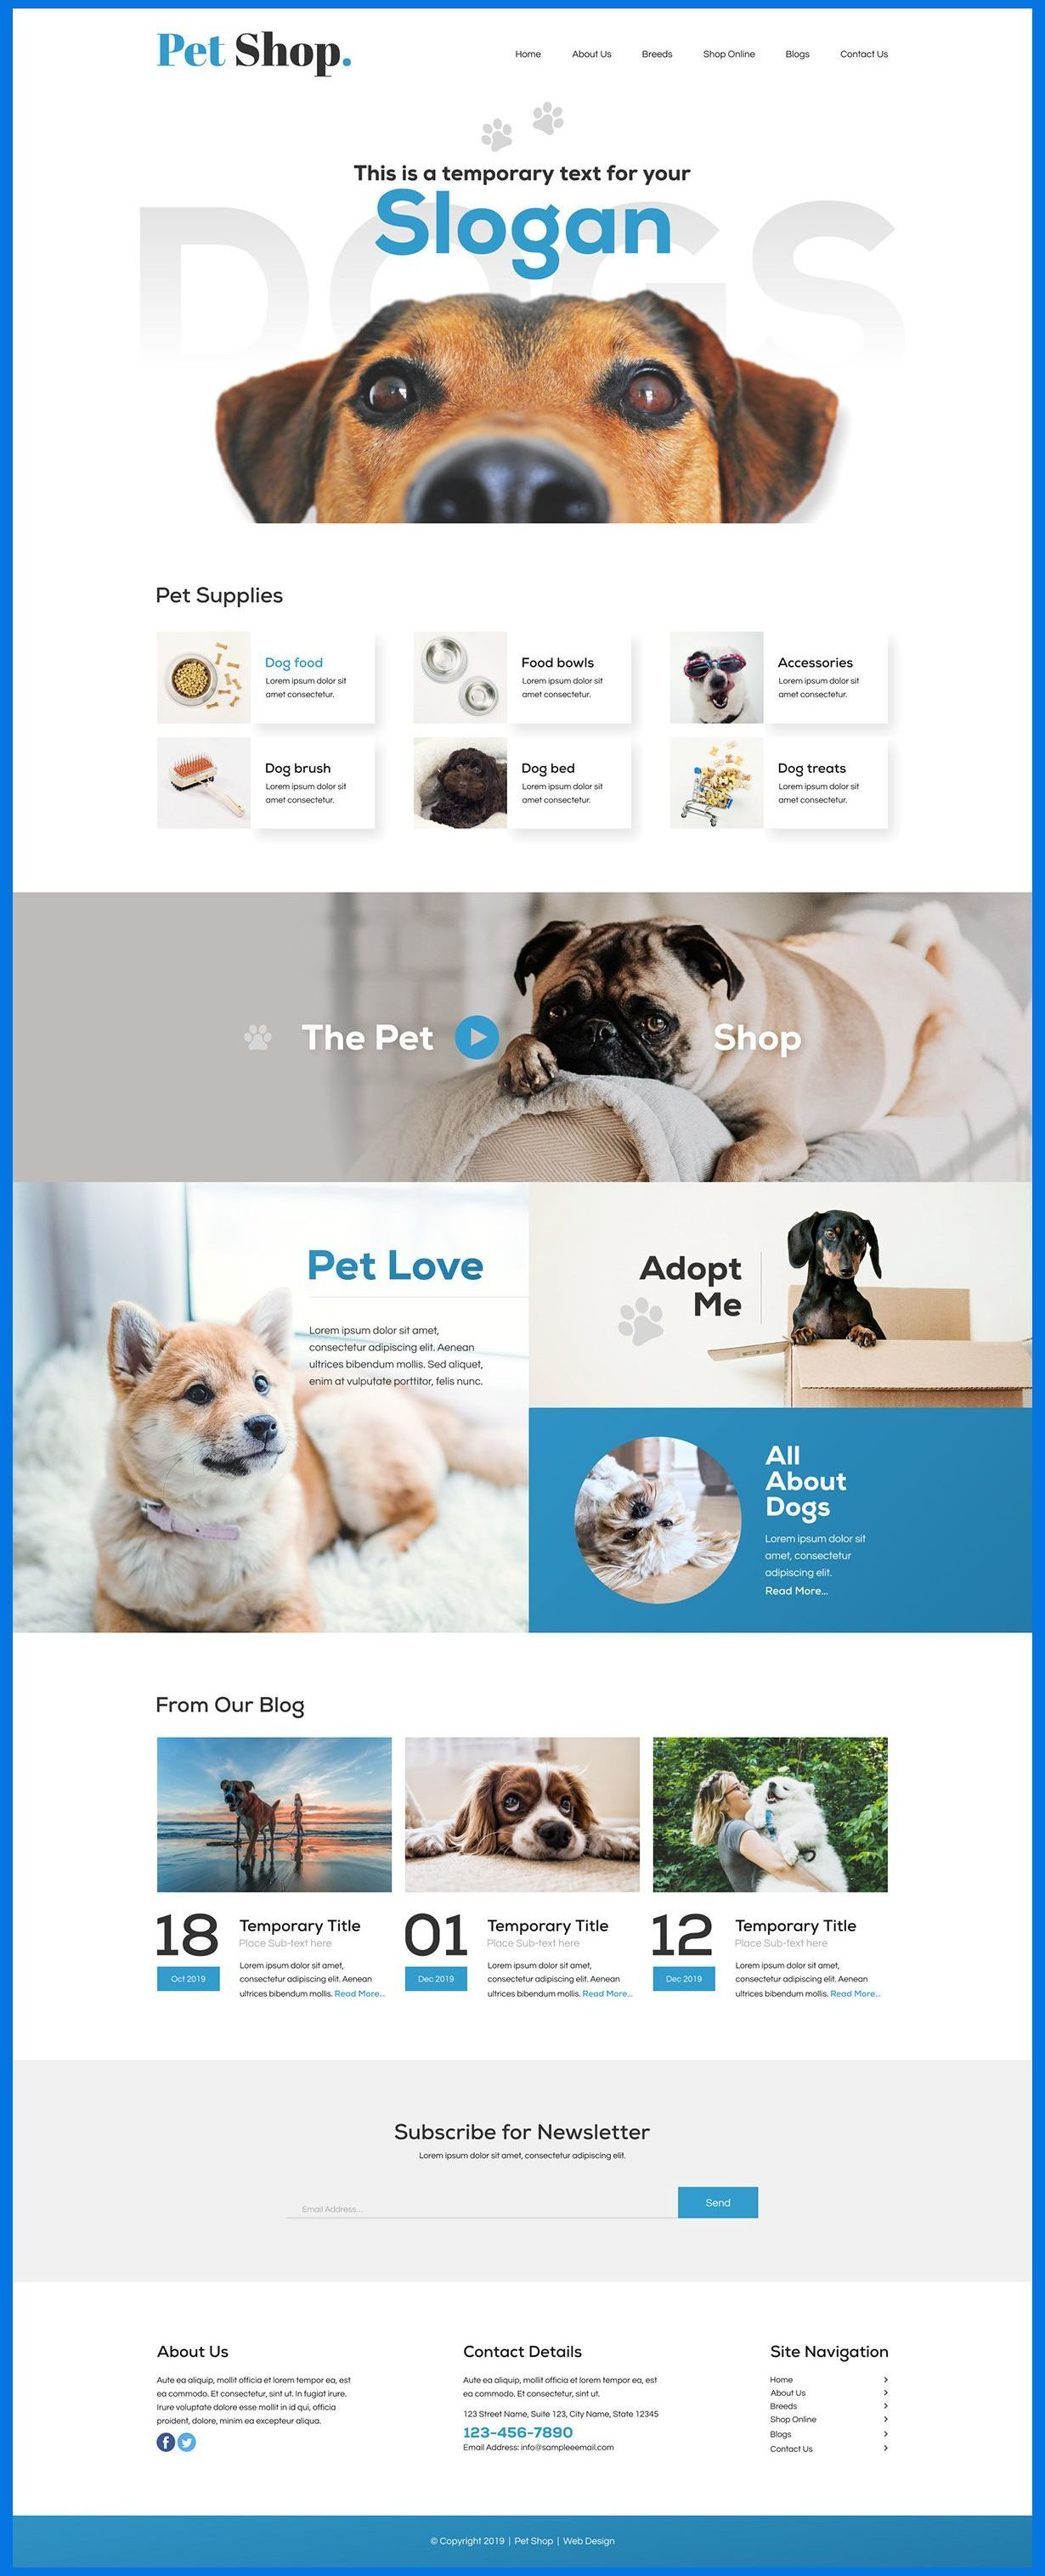 Web Banner Design Graphics Pet Shop Web Design Inspiration